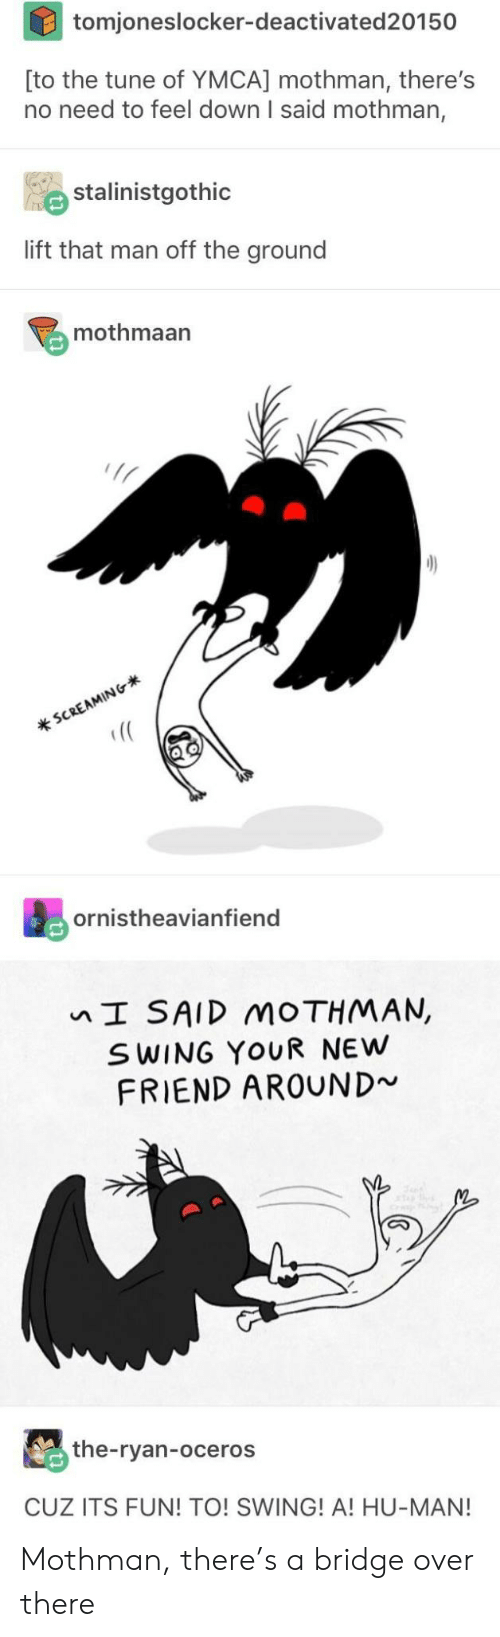 mothman: tomjoneslocker-deactivated20150  [to the tune of YMCA] mothman, there's  no need to feel down I said mothman,  stalinistgothic  lift that man off the ground  mothmaan  Ir  s0  (C  ornistheavianfiend  I SAID MOTHMAN,  S WING YOUR NEw  FRIEND AROUND  the-ryan-oceros  CUZ ITS FUN! TO! SWING! A! HU-MAN! Mothman, there's a bridge over there